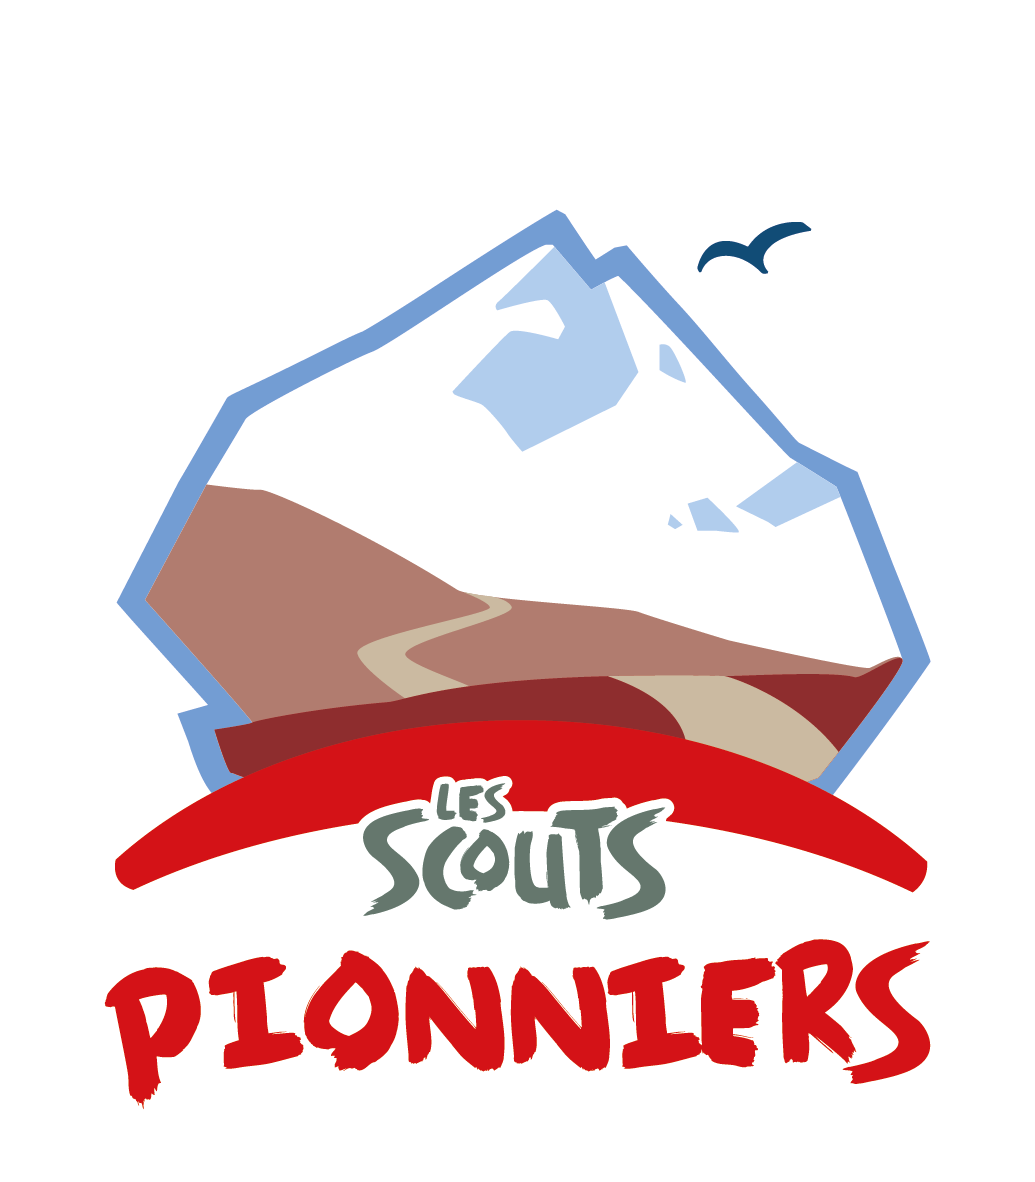 Branches_Logos_2018_Pionniers_Quad_Protection.png